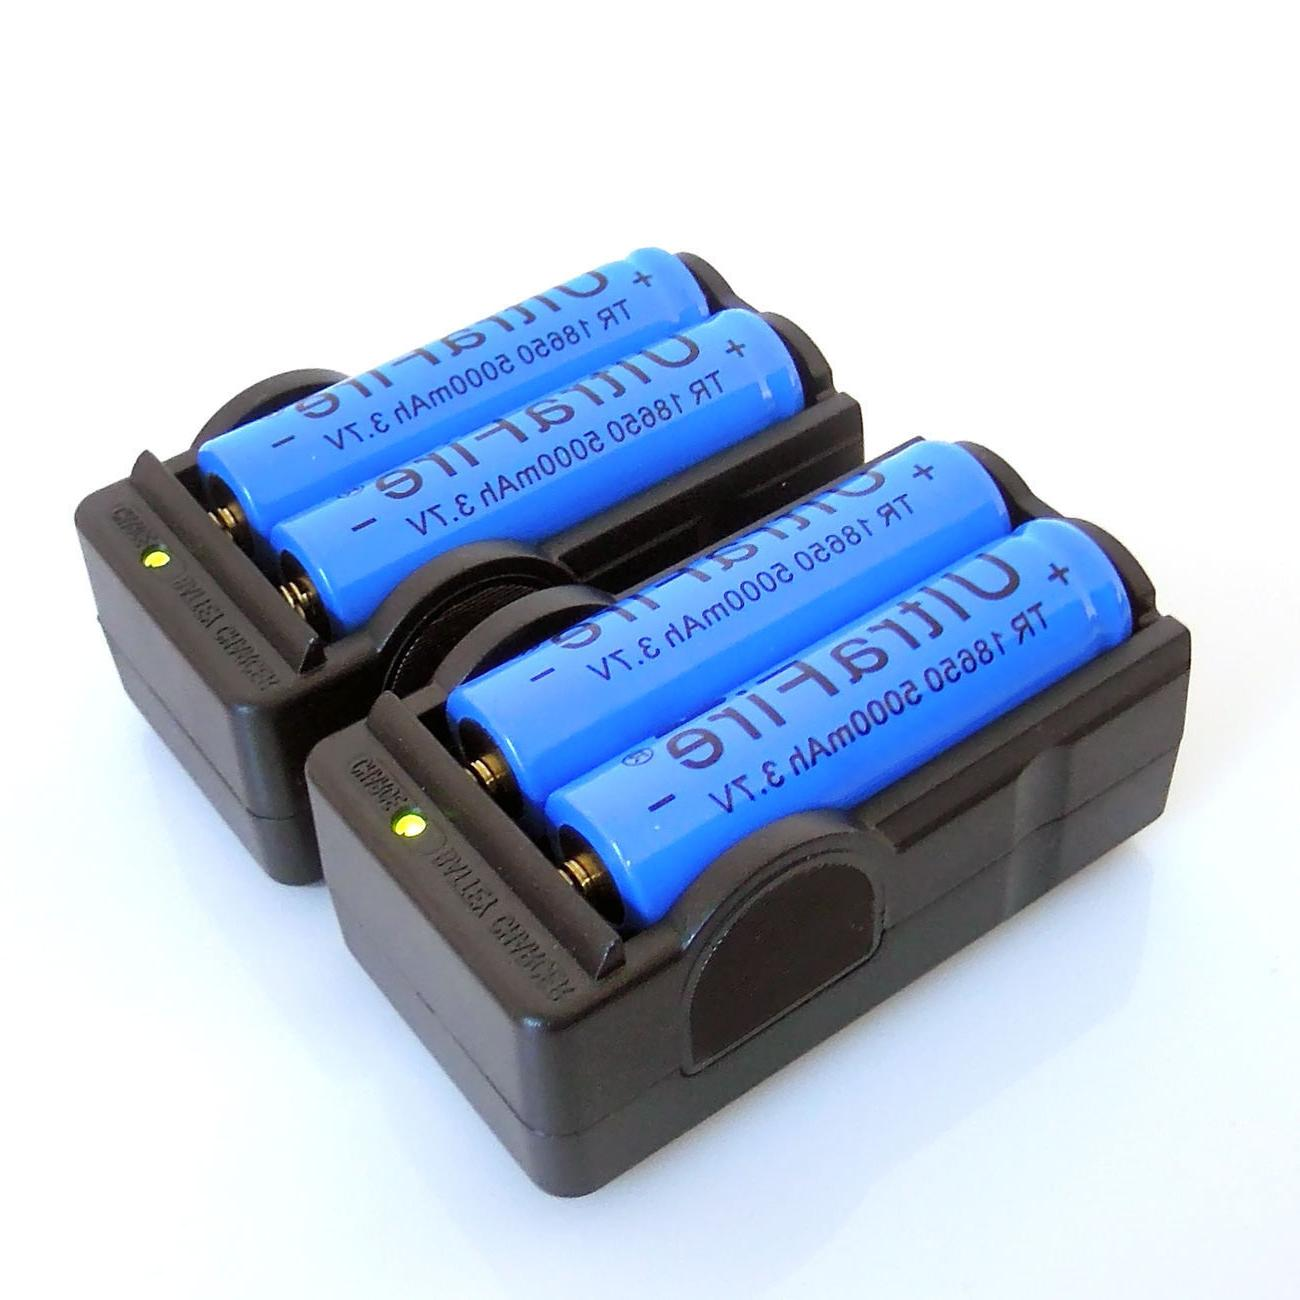 5000mAh 3.7V Li-ion Cell Bat Charger